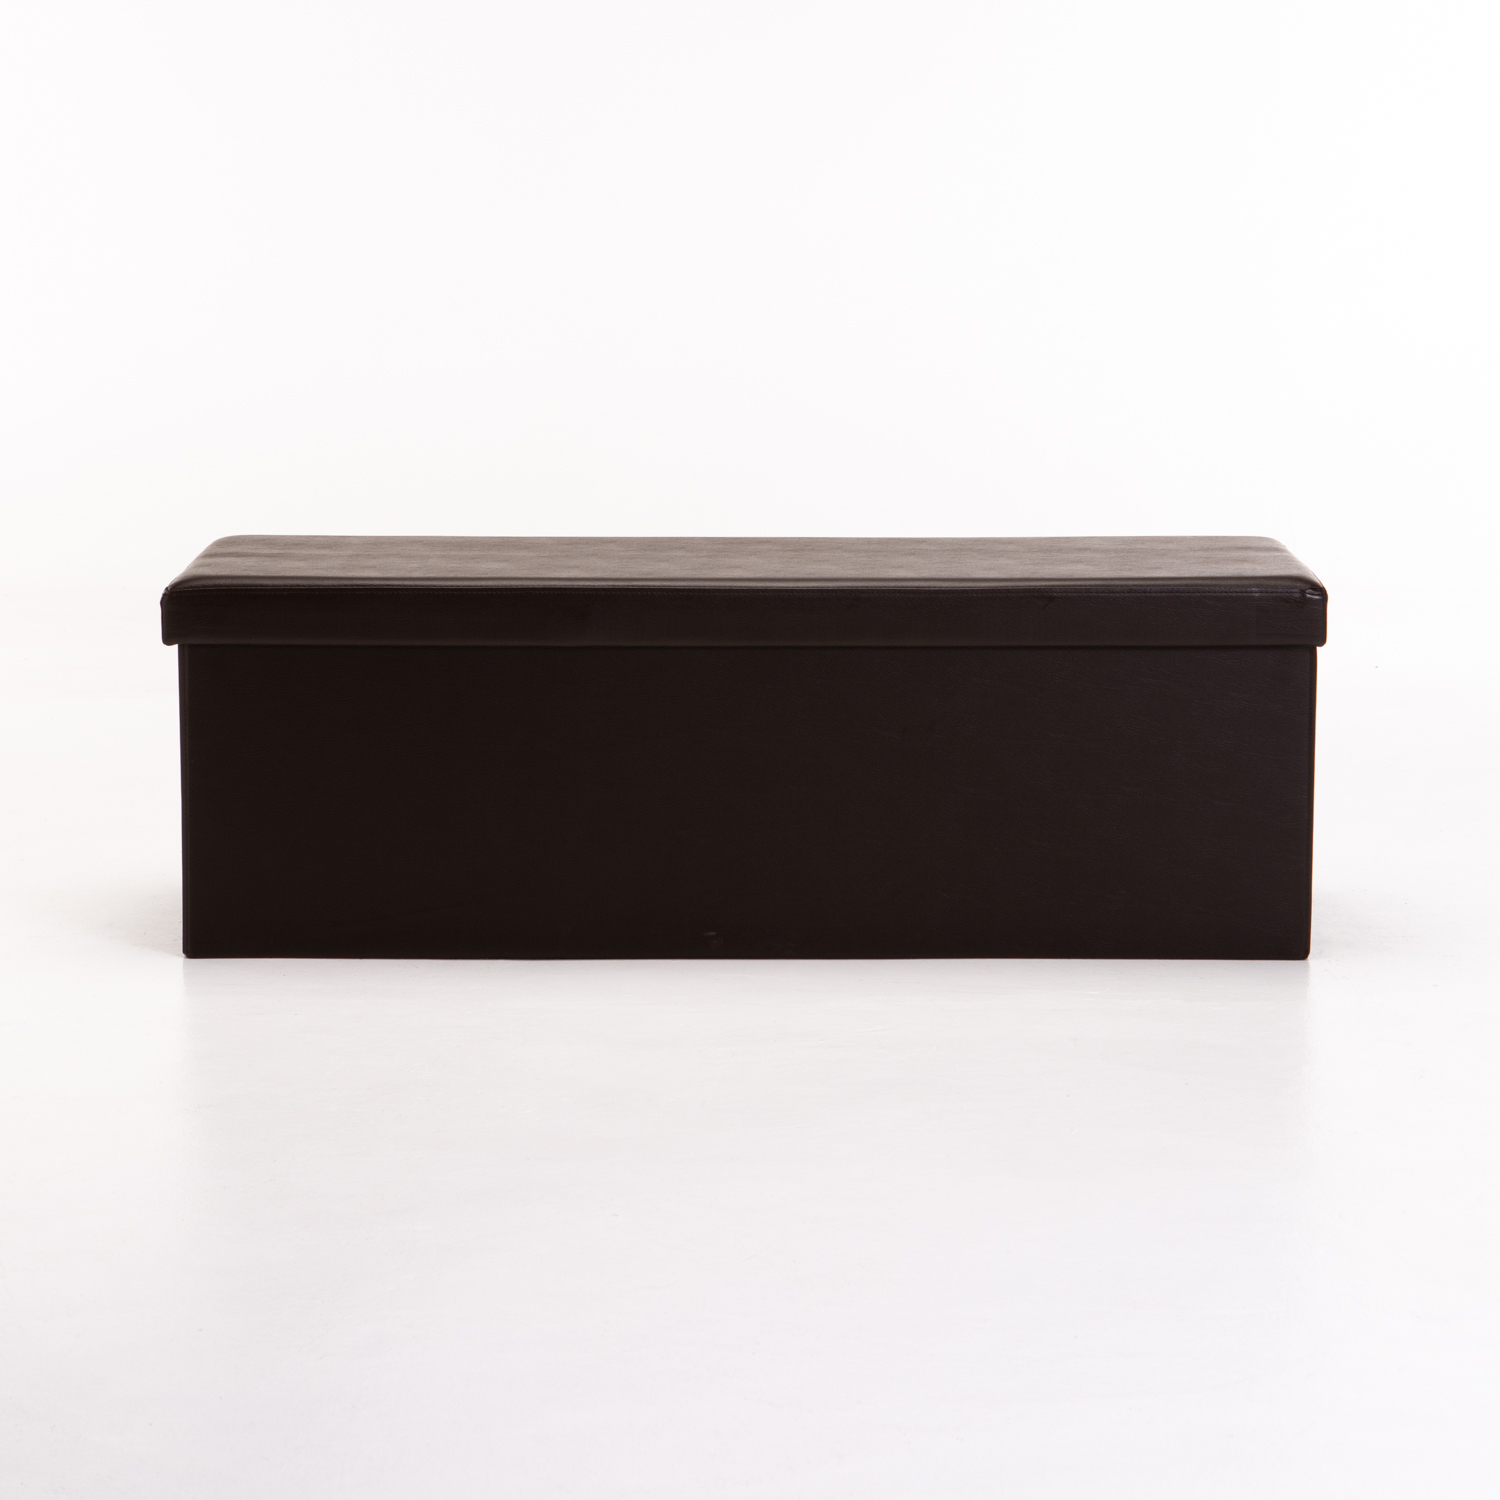 KIA LEATHER TOUCH TRIPLE OTTOMAN